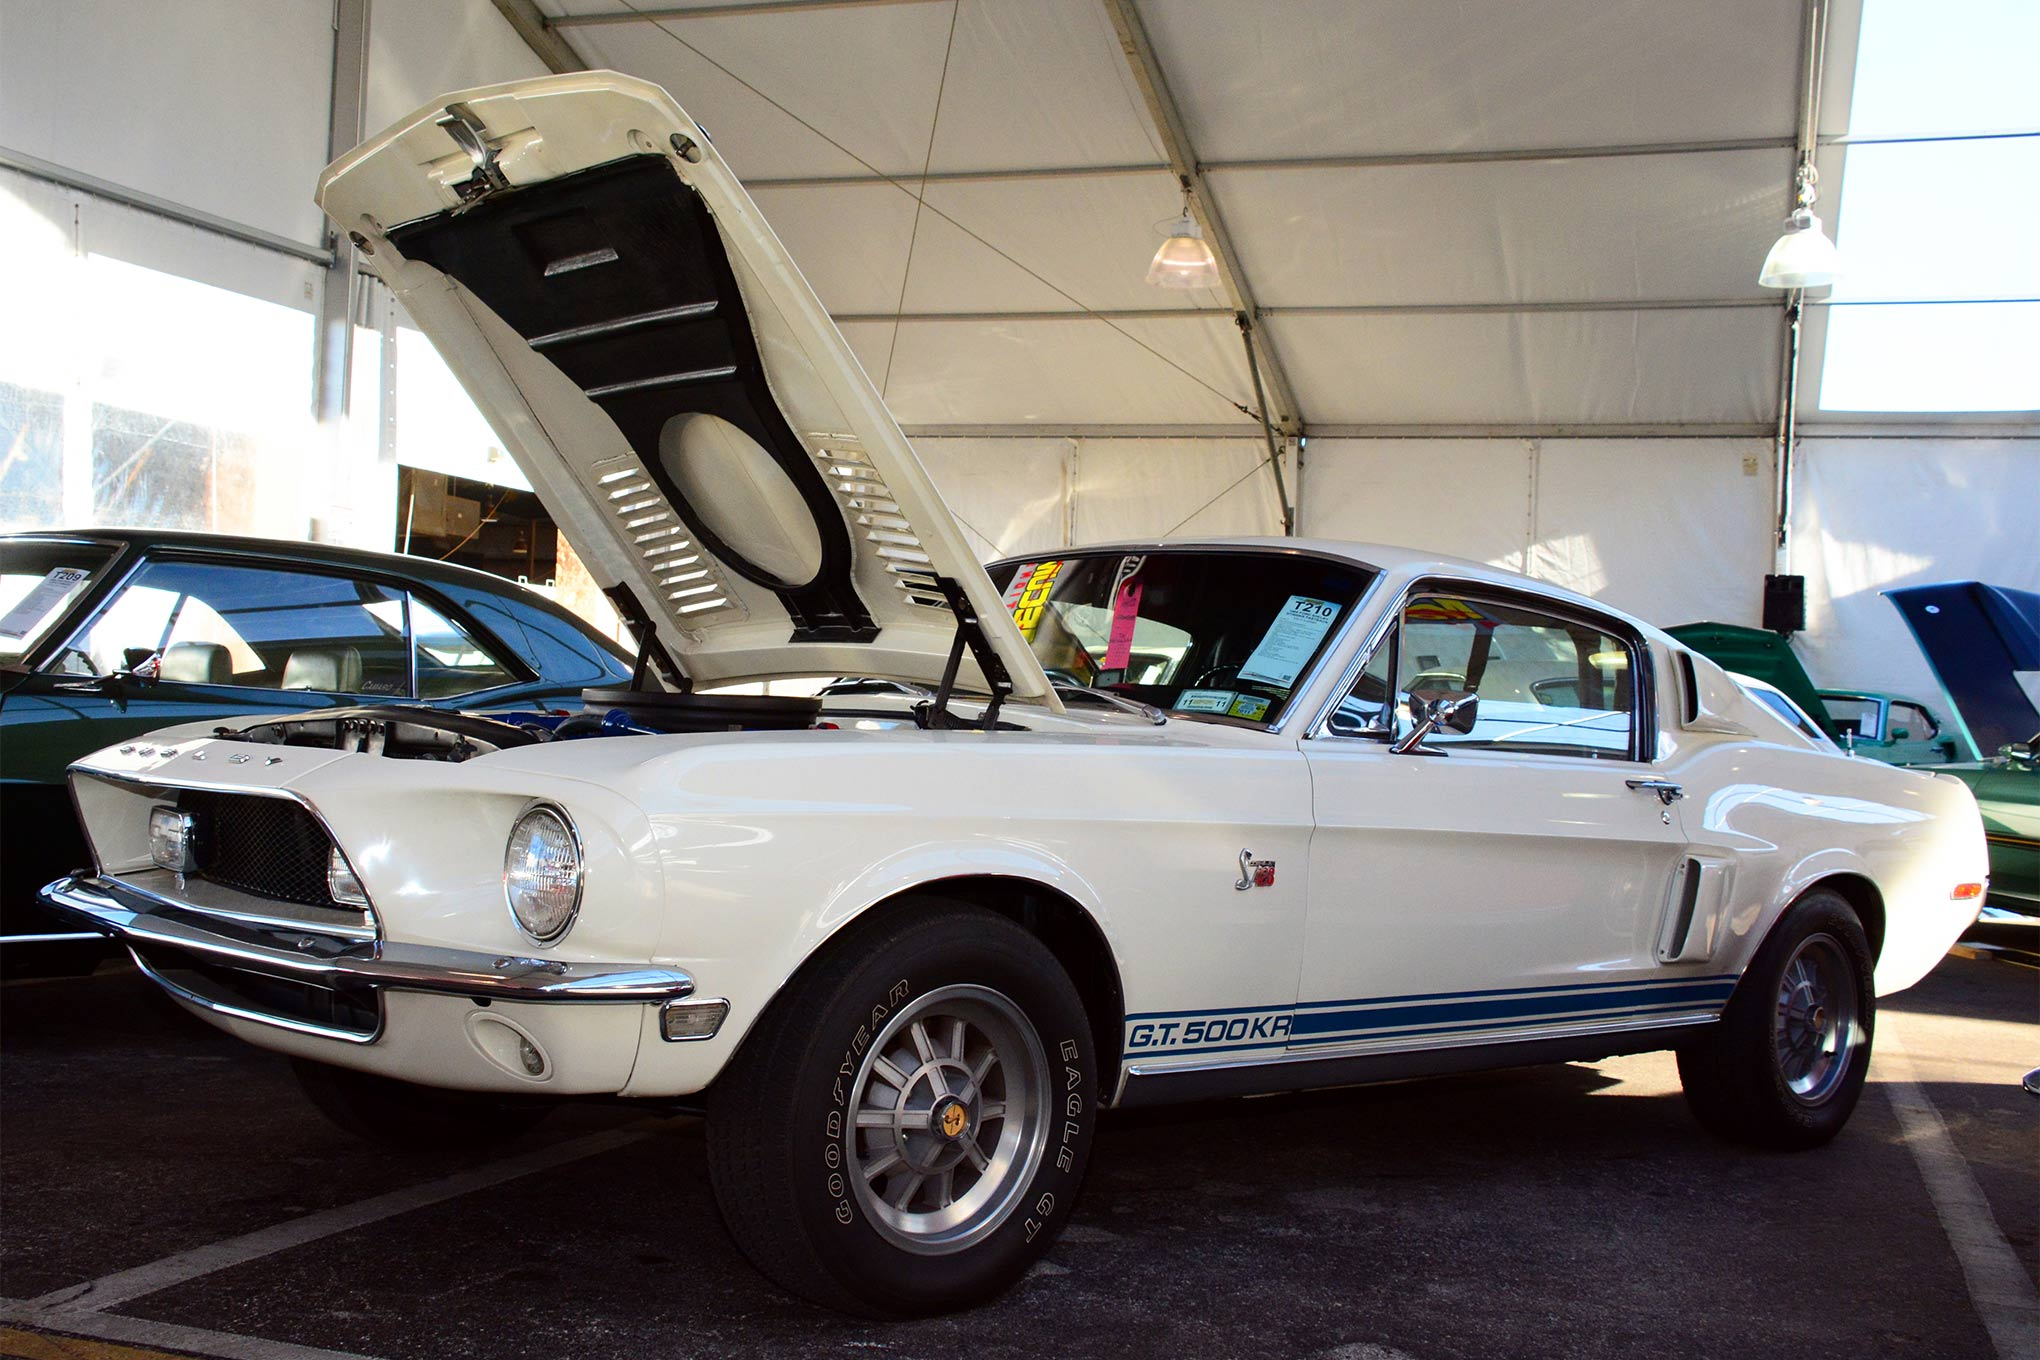 This 1968 Shelby GT500, with a matching-numbers 428 Cobra Jet engine and Carroll Shelby's autograph on the glovebox, was one of the Great Eight cars selected by MCR to be followed during the course of Thursday's Mecum Kissimmee 2016 auction.